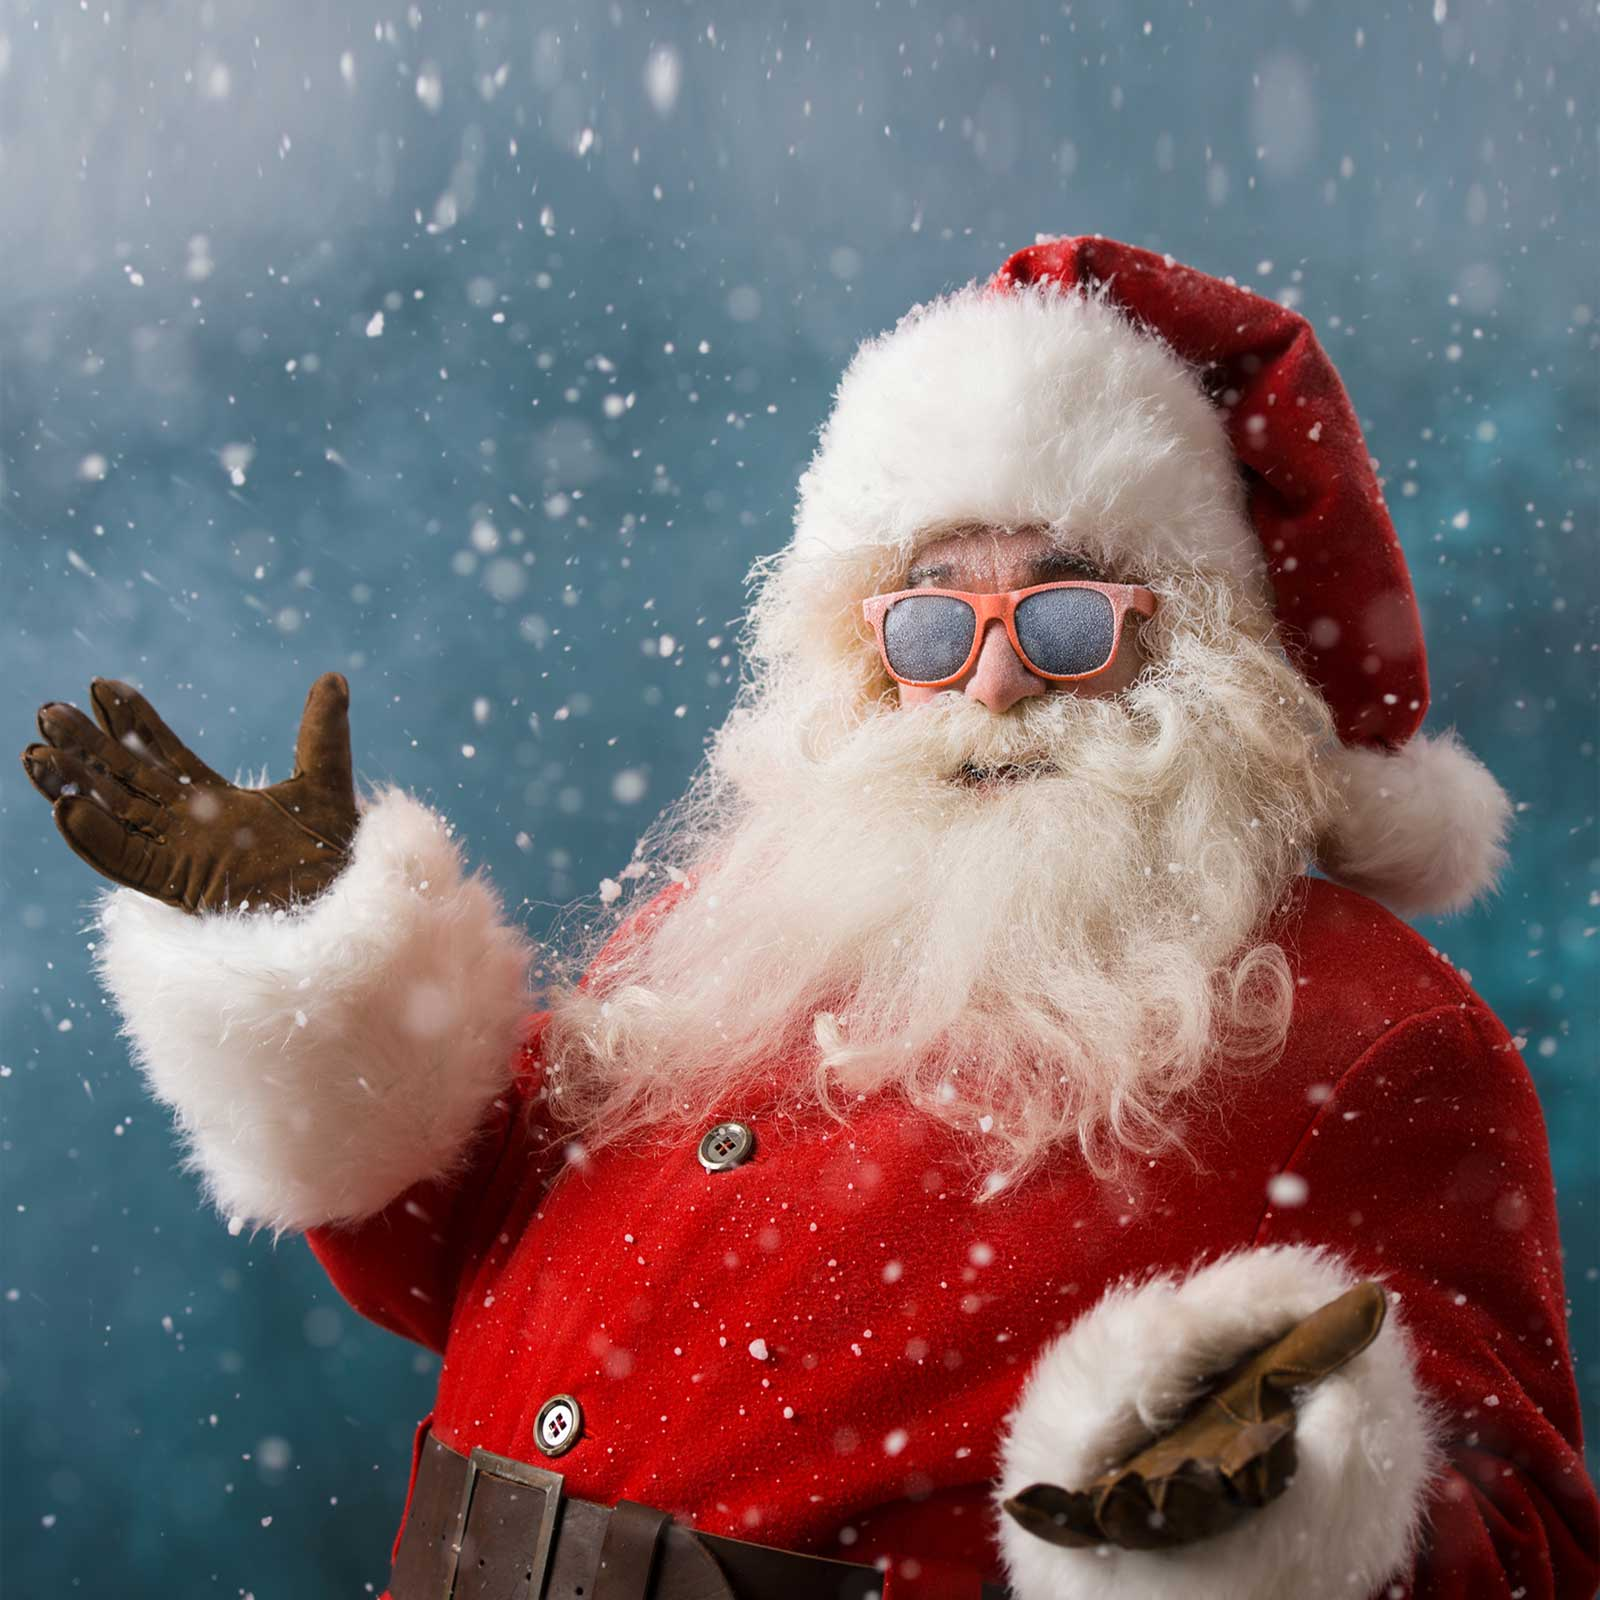 Santa-with-sunglasses.jpg